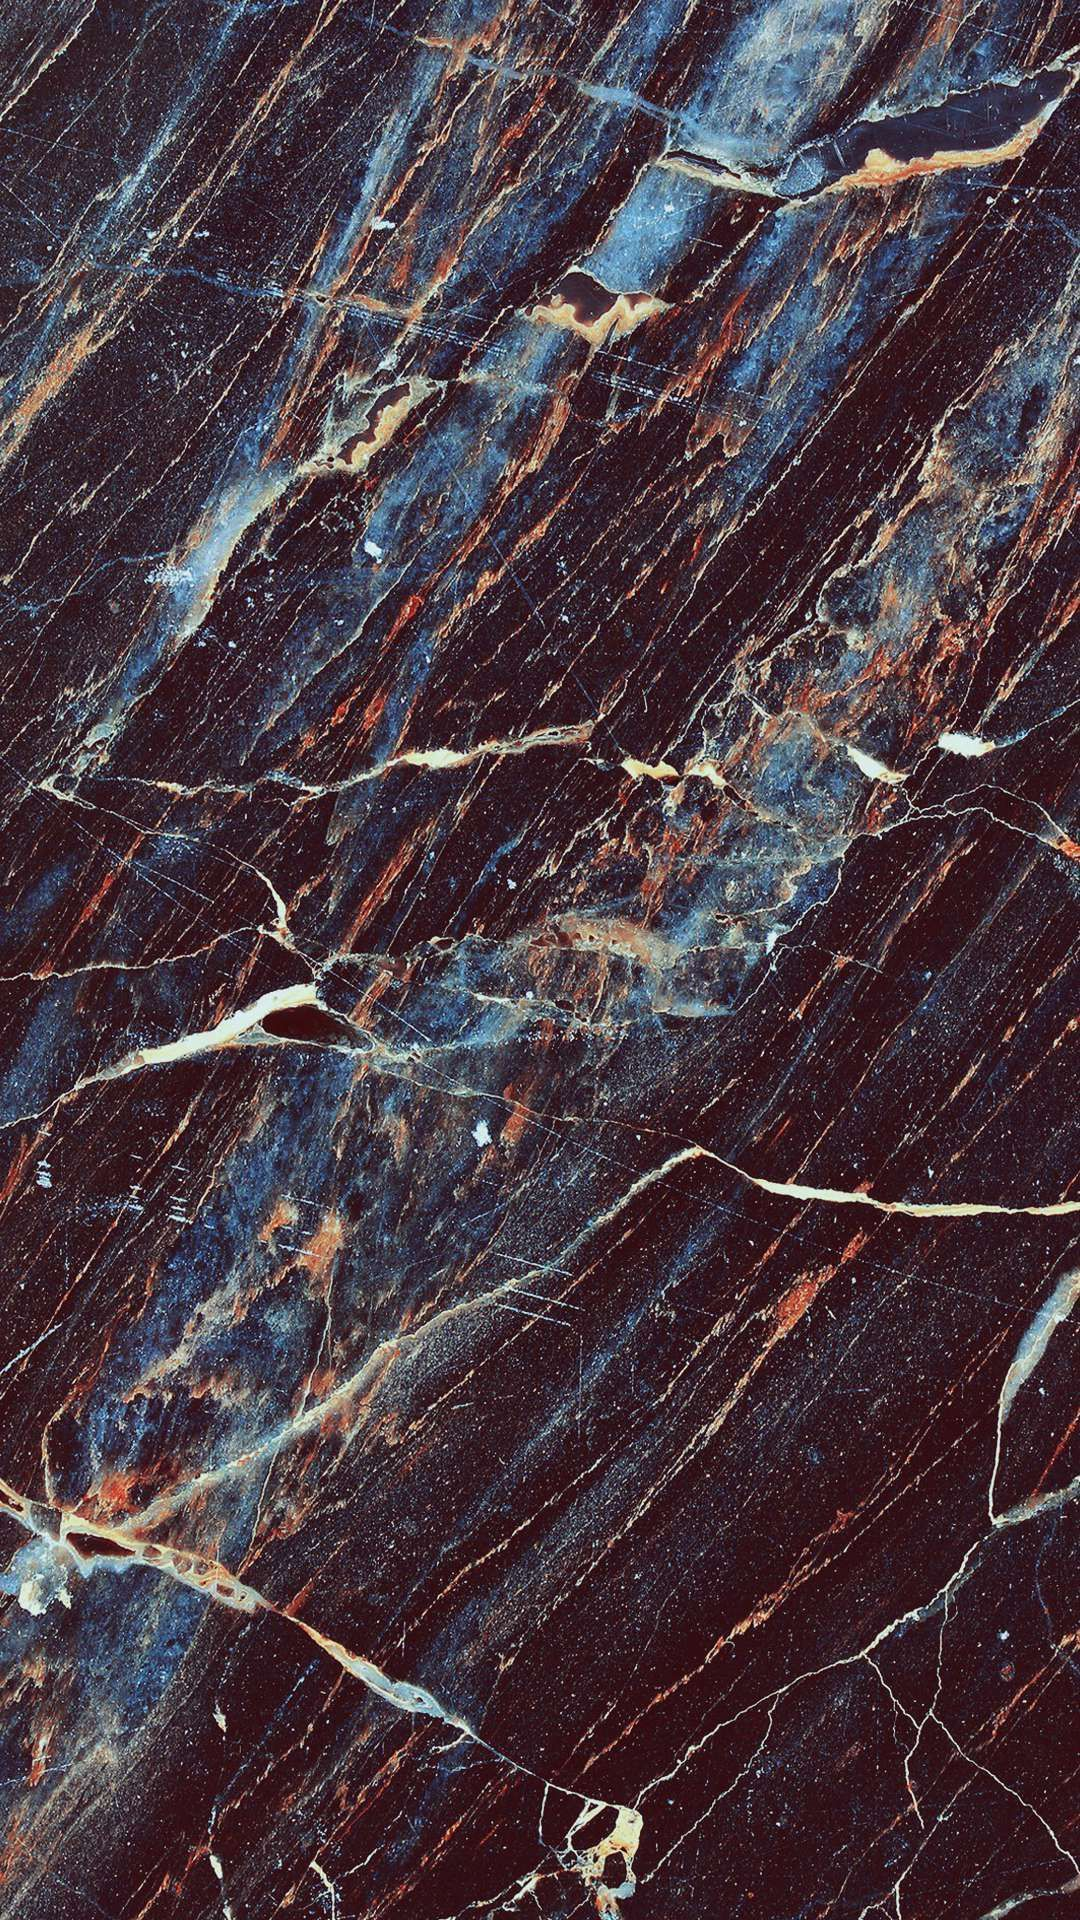 Pin By Soulbearingquotes On Iphone Wallpaper Blue Marble Wallpaper Marble Wallpaper Phone Marble Iphone Wallpaper